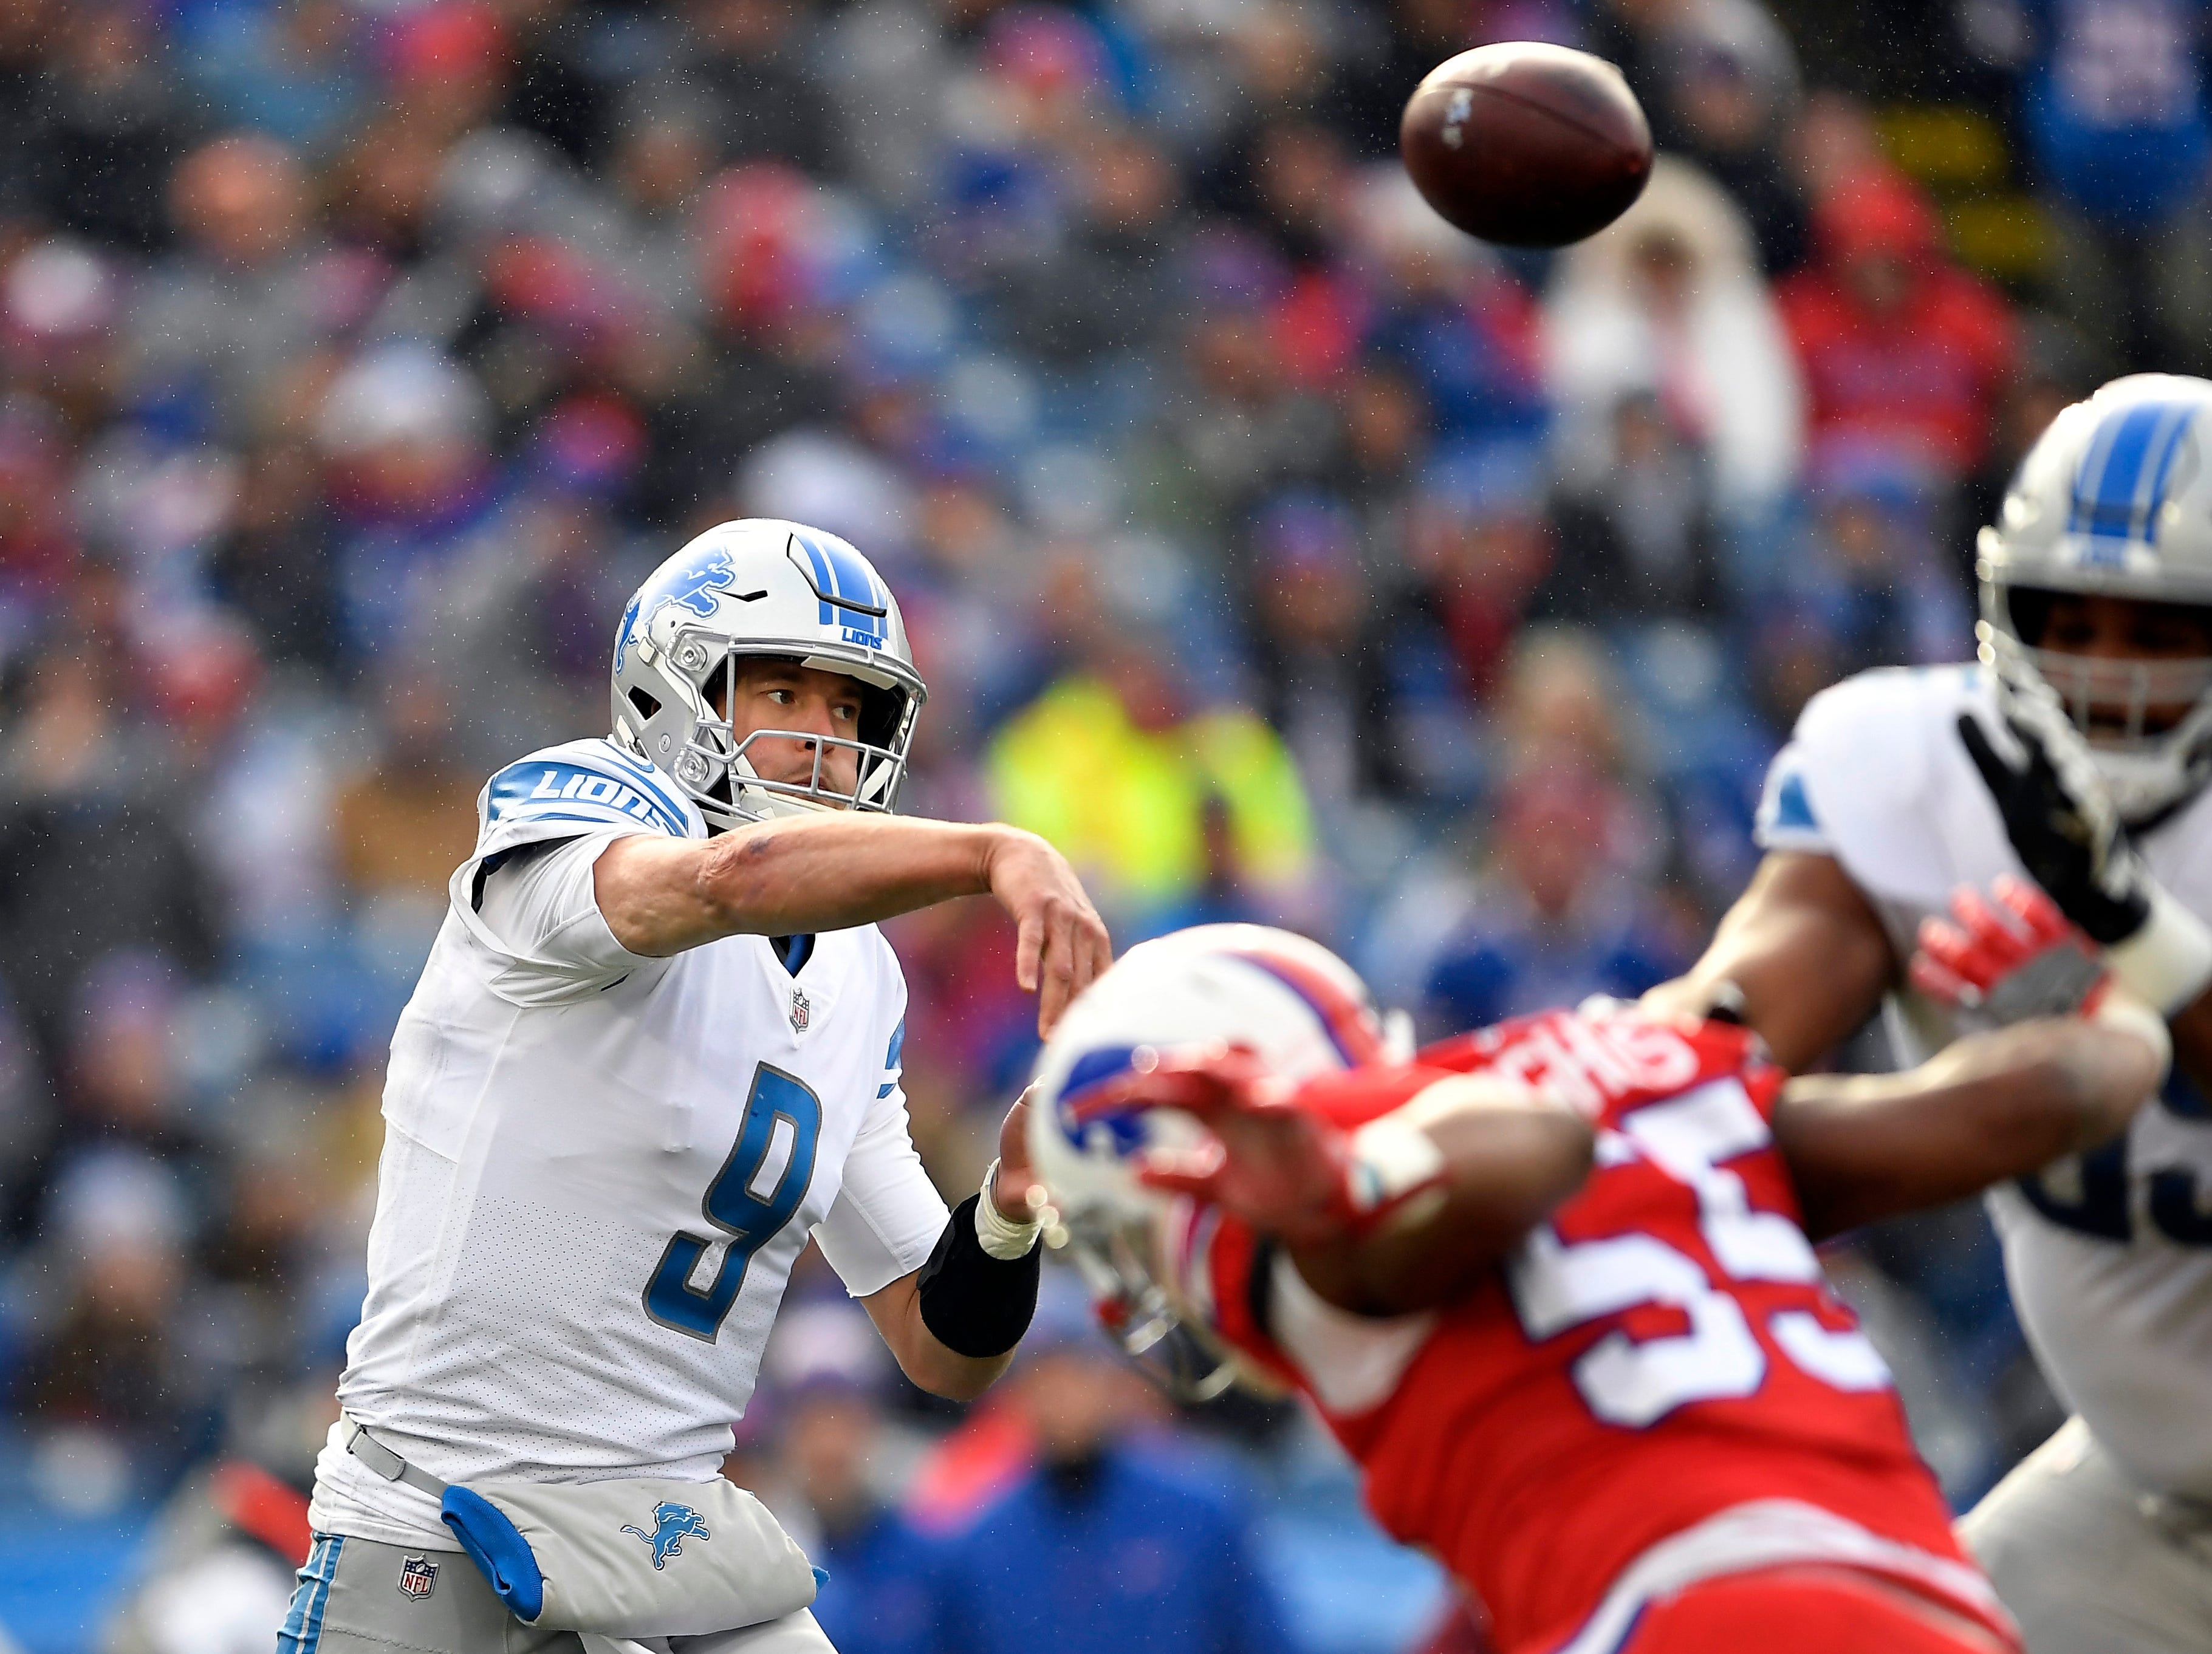 Detroit Lions quarterback Matthew Stafford (9) throws during the first half.